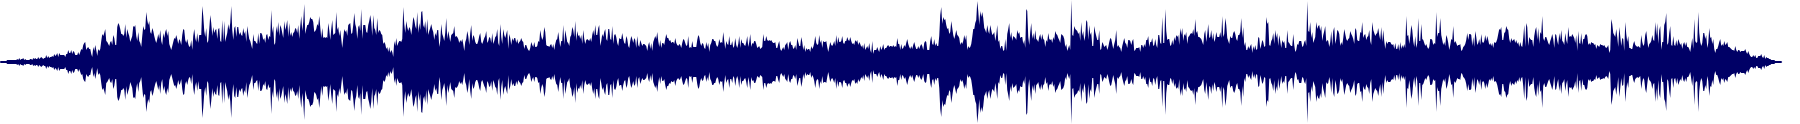 waveform of track #67728